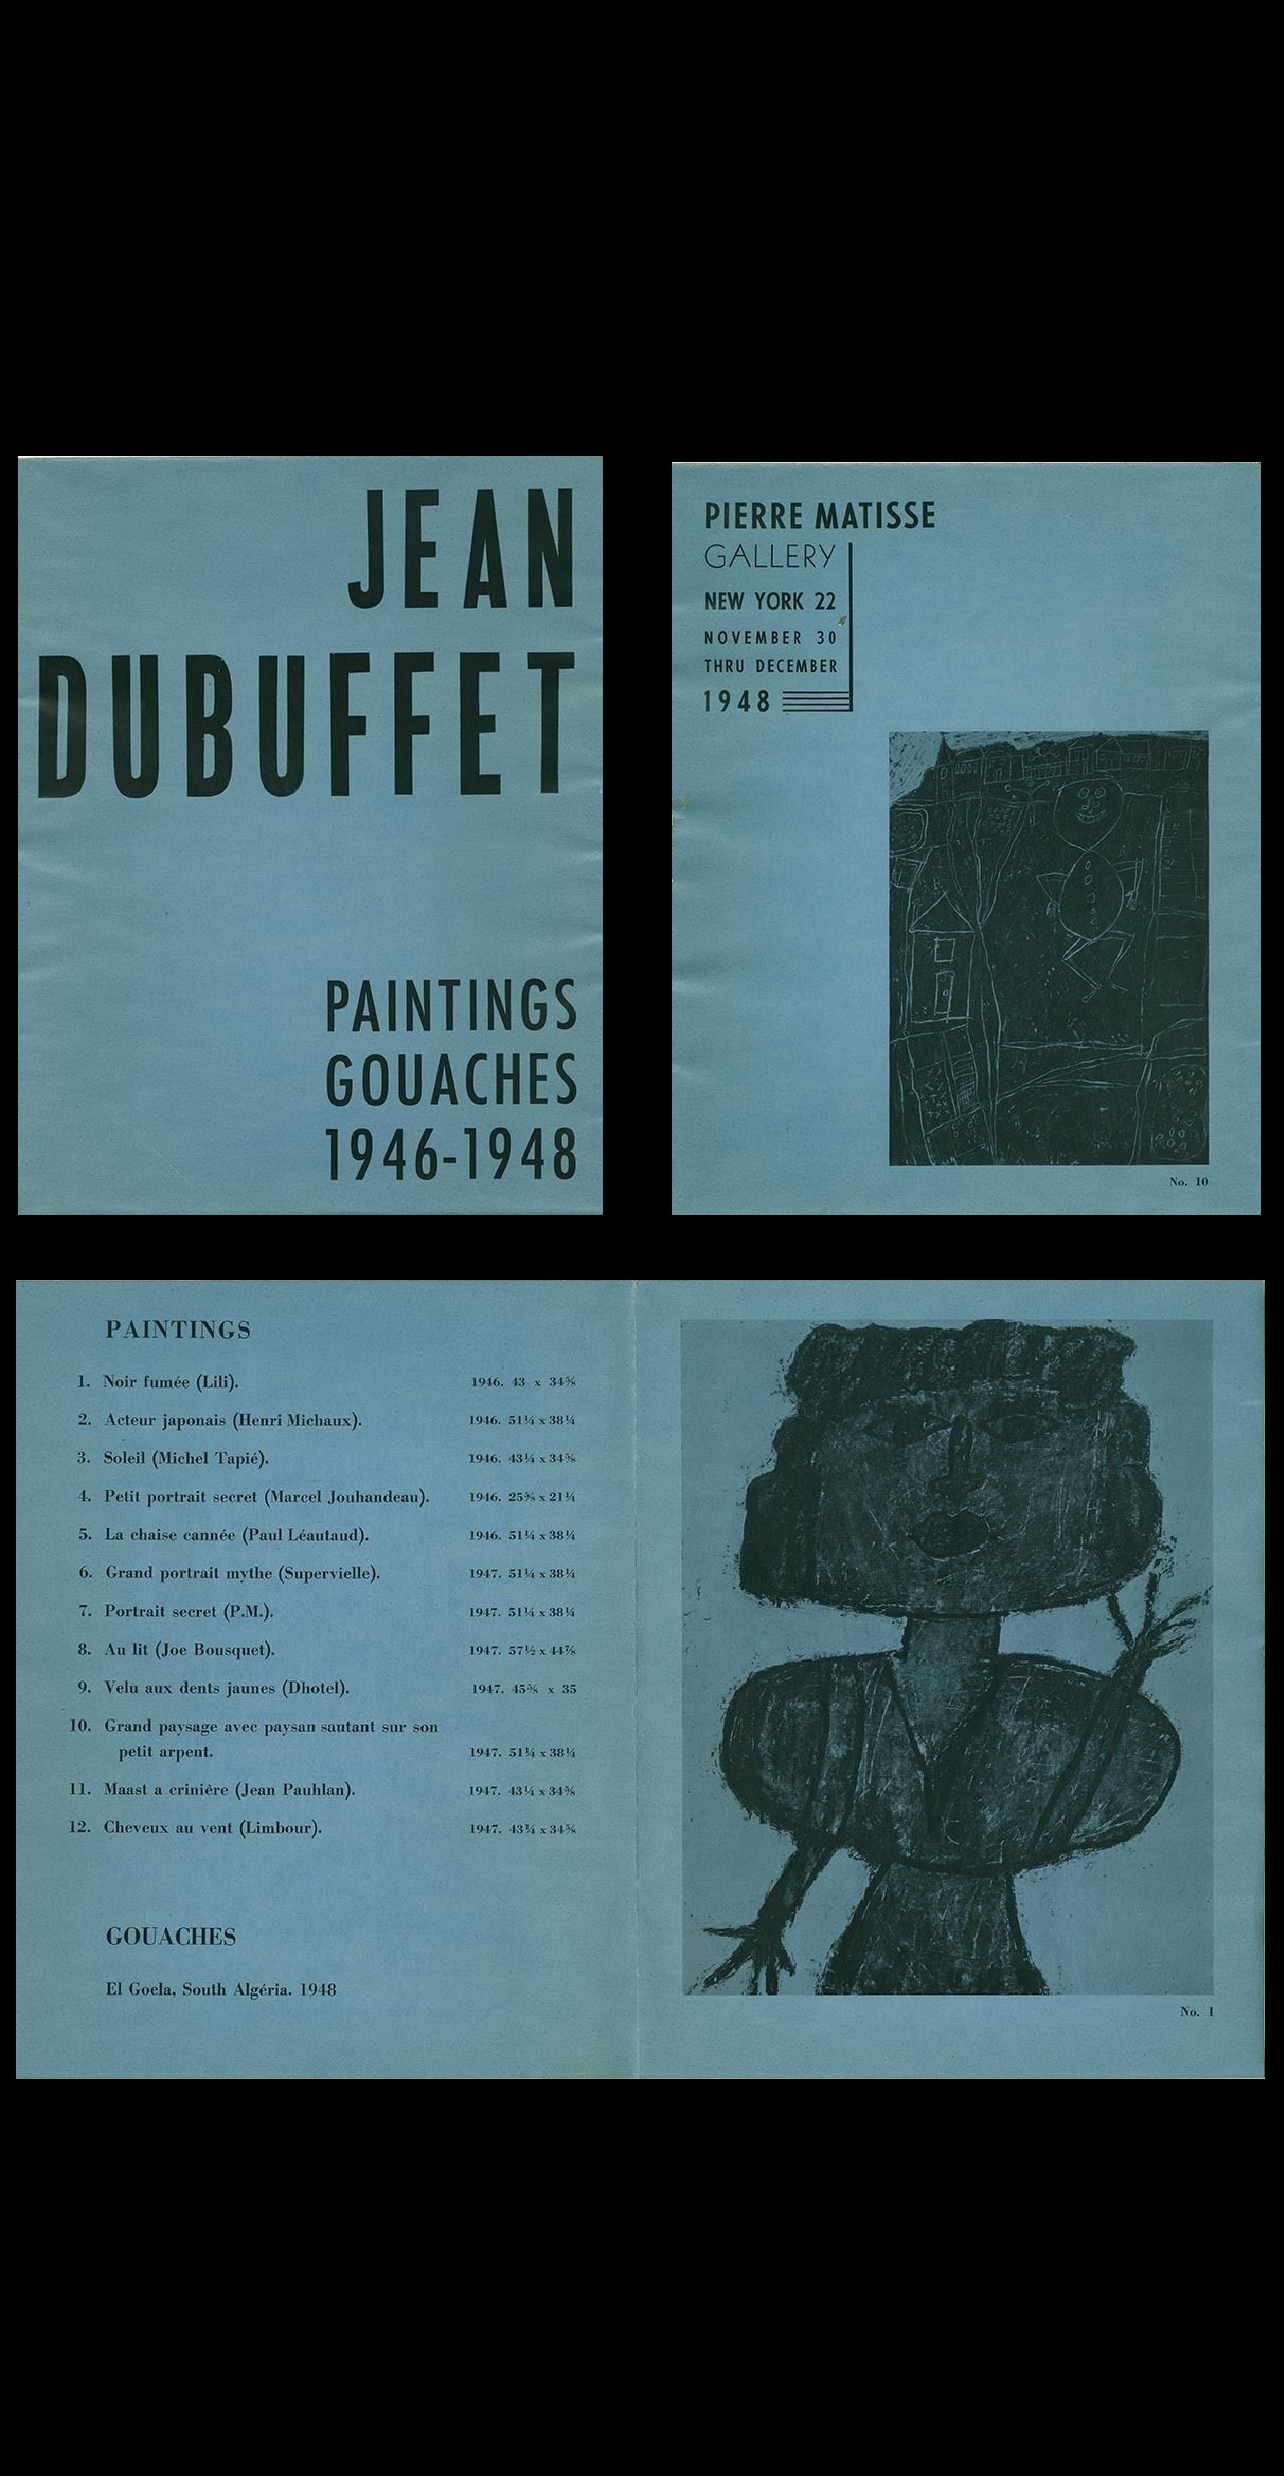 """ Paintings Gouaches 1946-1948"", e xhibition catalogue, 1948, Pierre Matisse Gallery NYC."